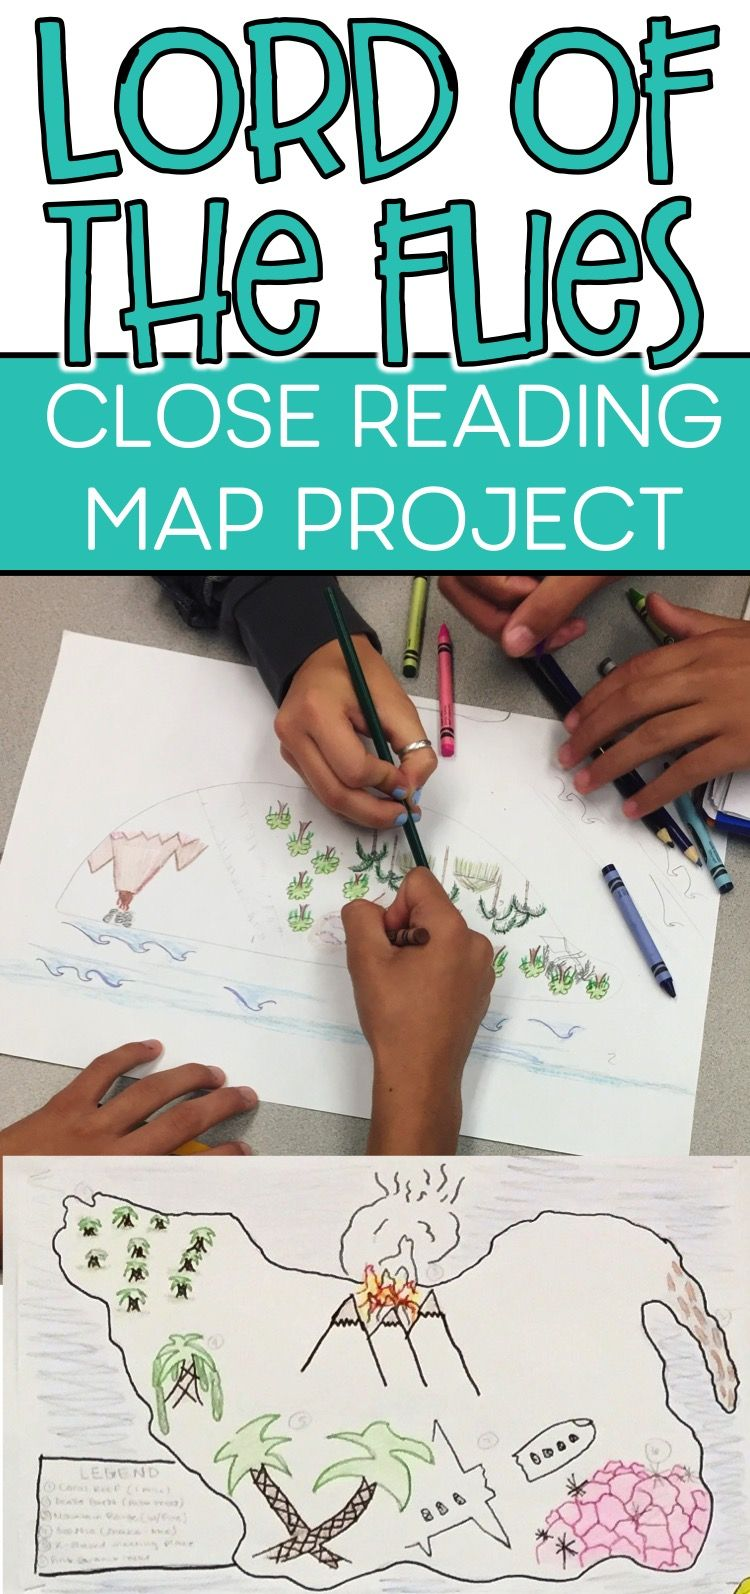 Lord Of The Flies Map Project Map Projects Lord Of The Flies 10th Grade English Lessons